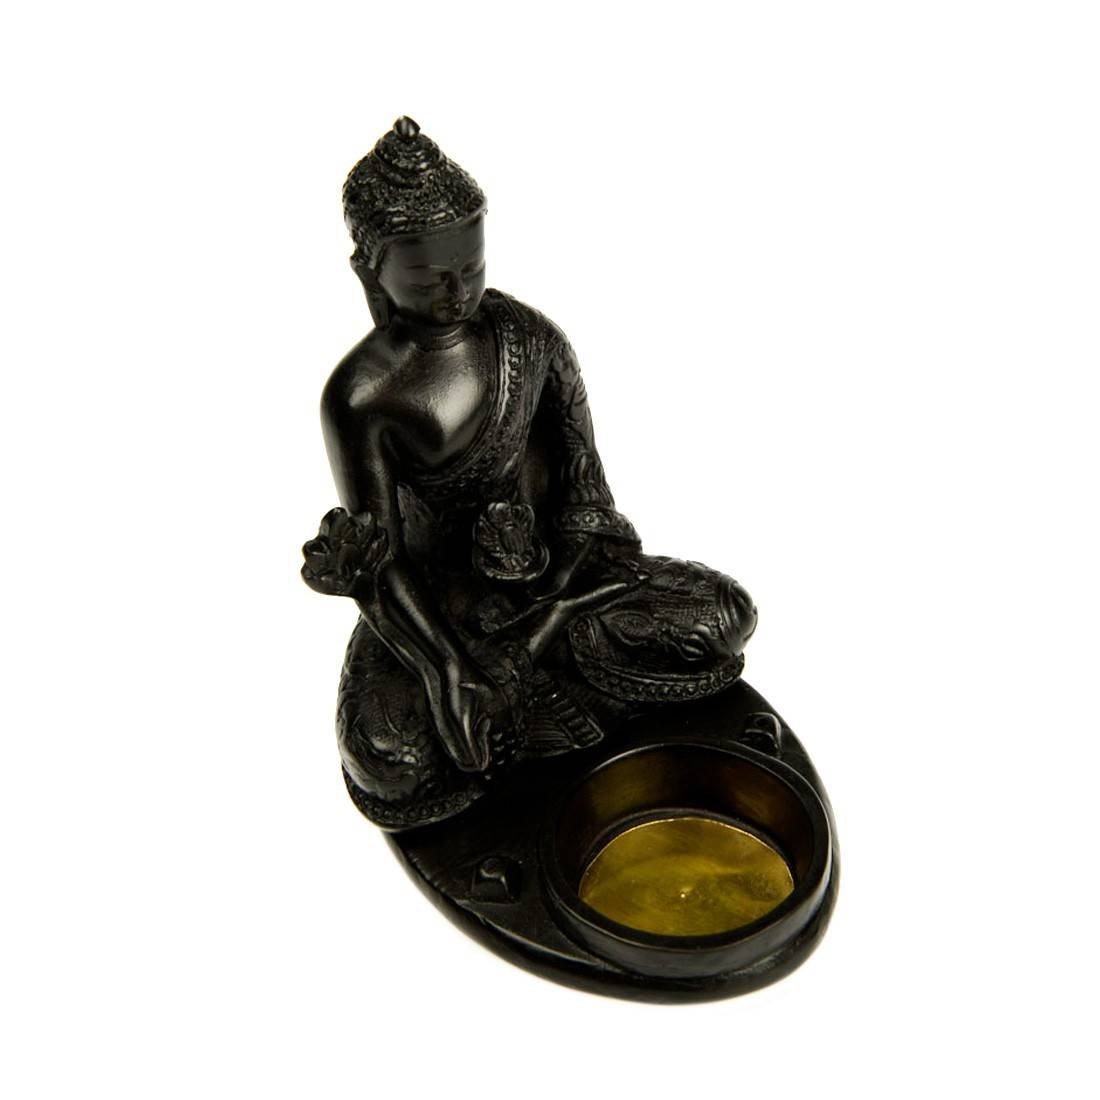 Porte encens bougeoir buddha disponible sur s factory for Porte encens